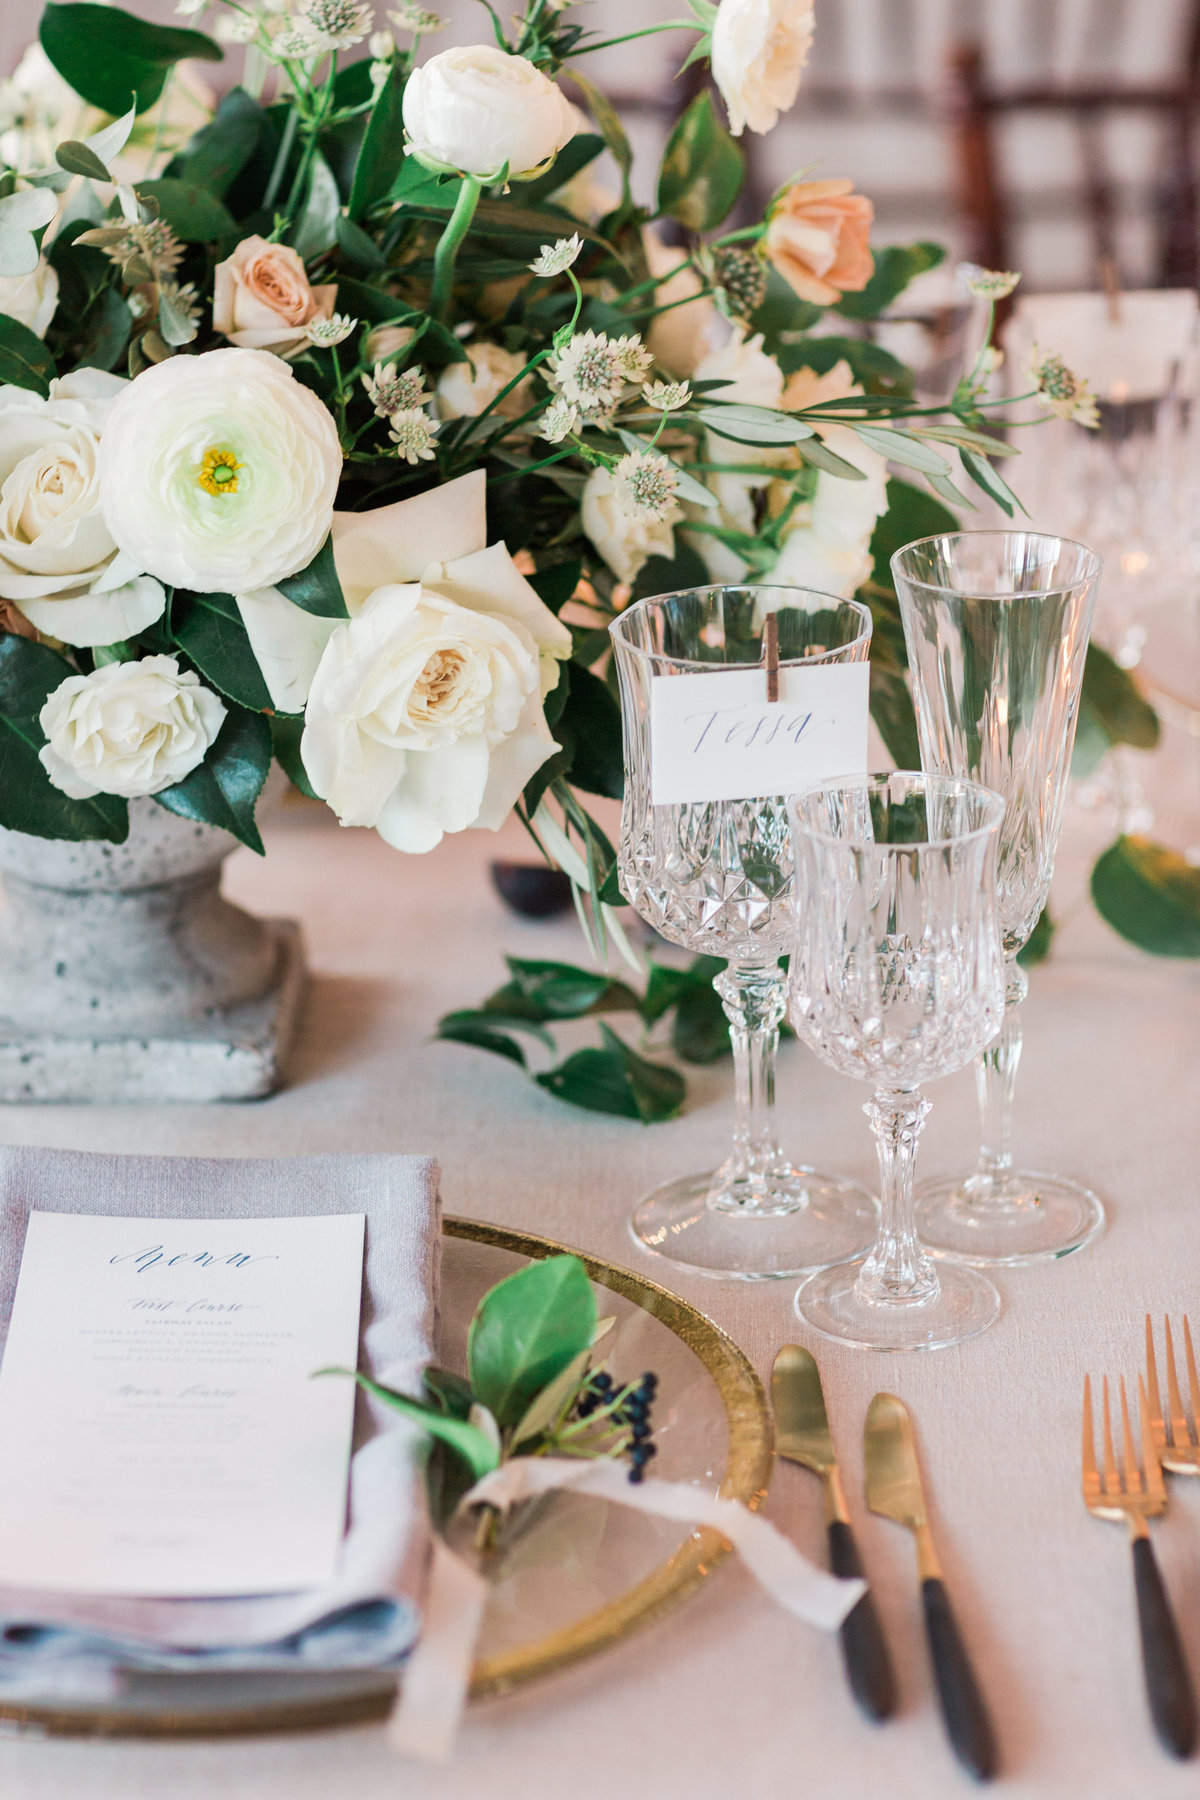 Carmel_Seaside_Chic_Wedding_Valorie_Darling_Photography - 111 of 134